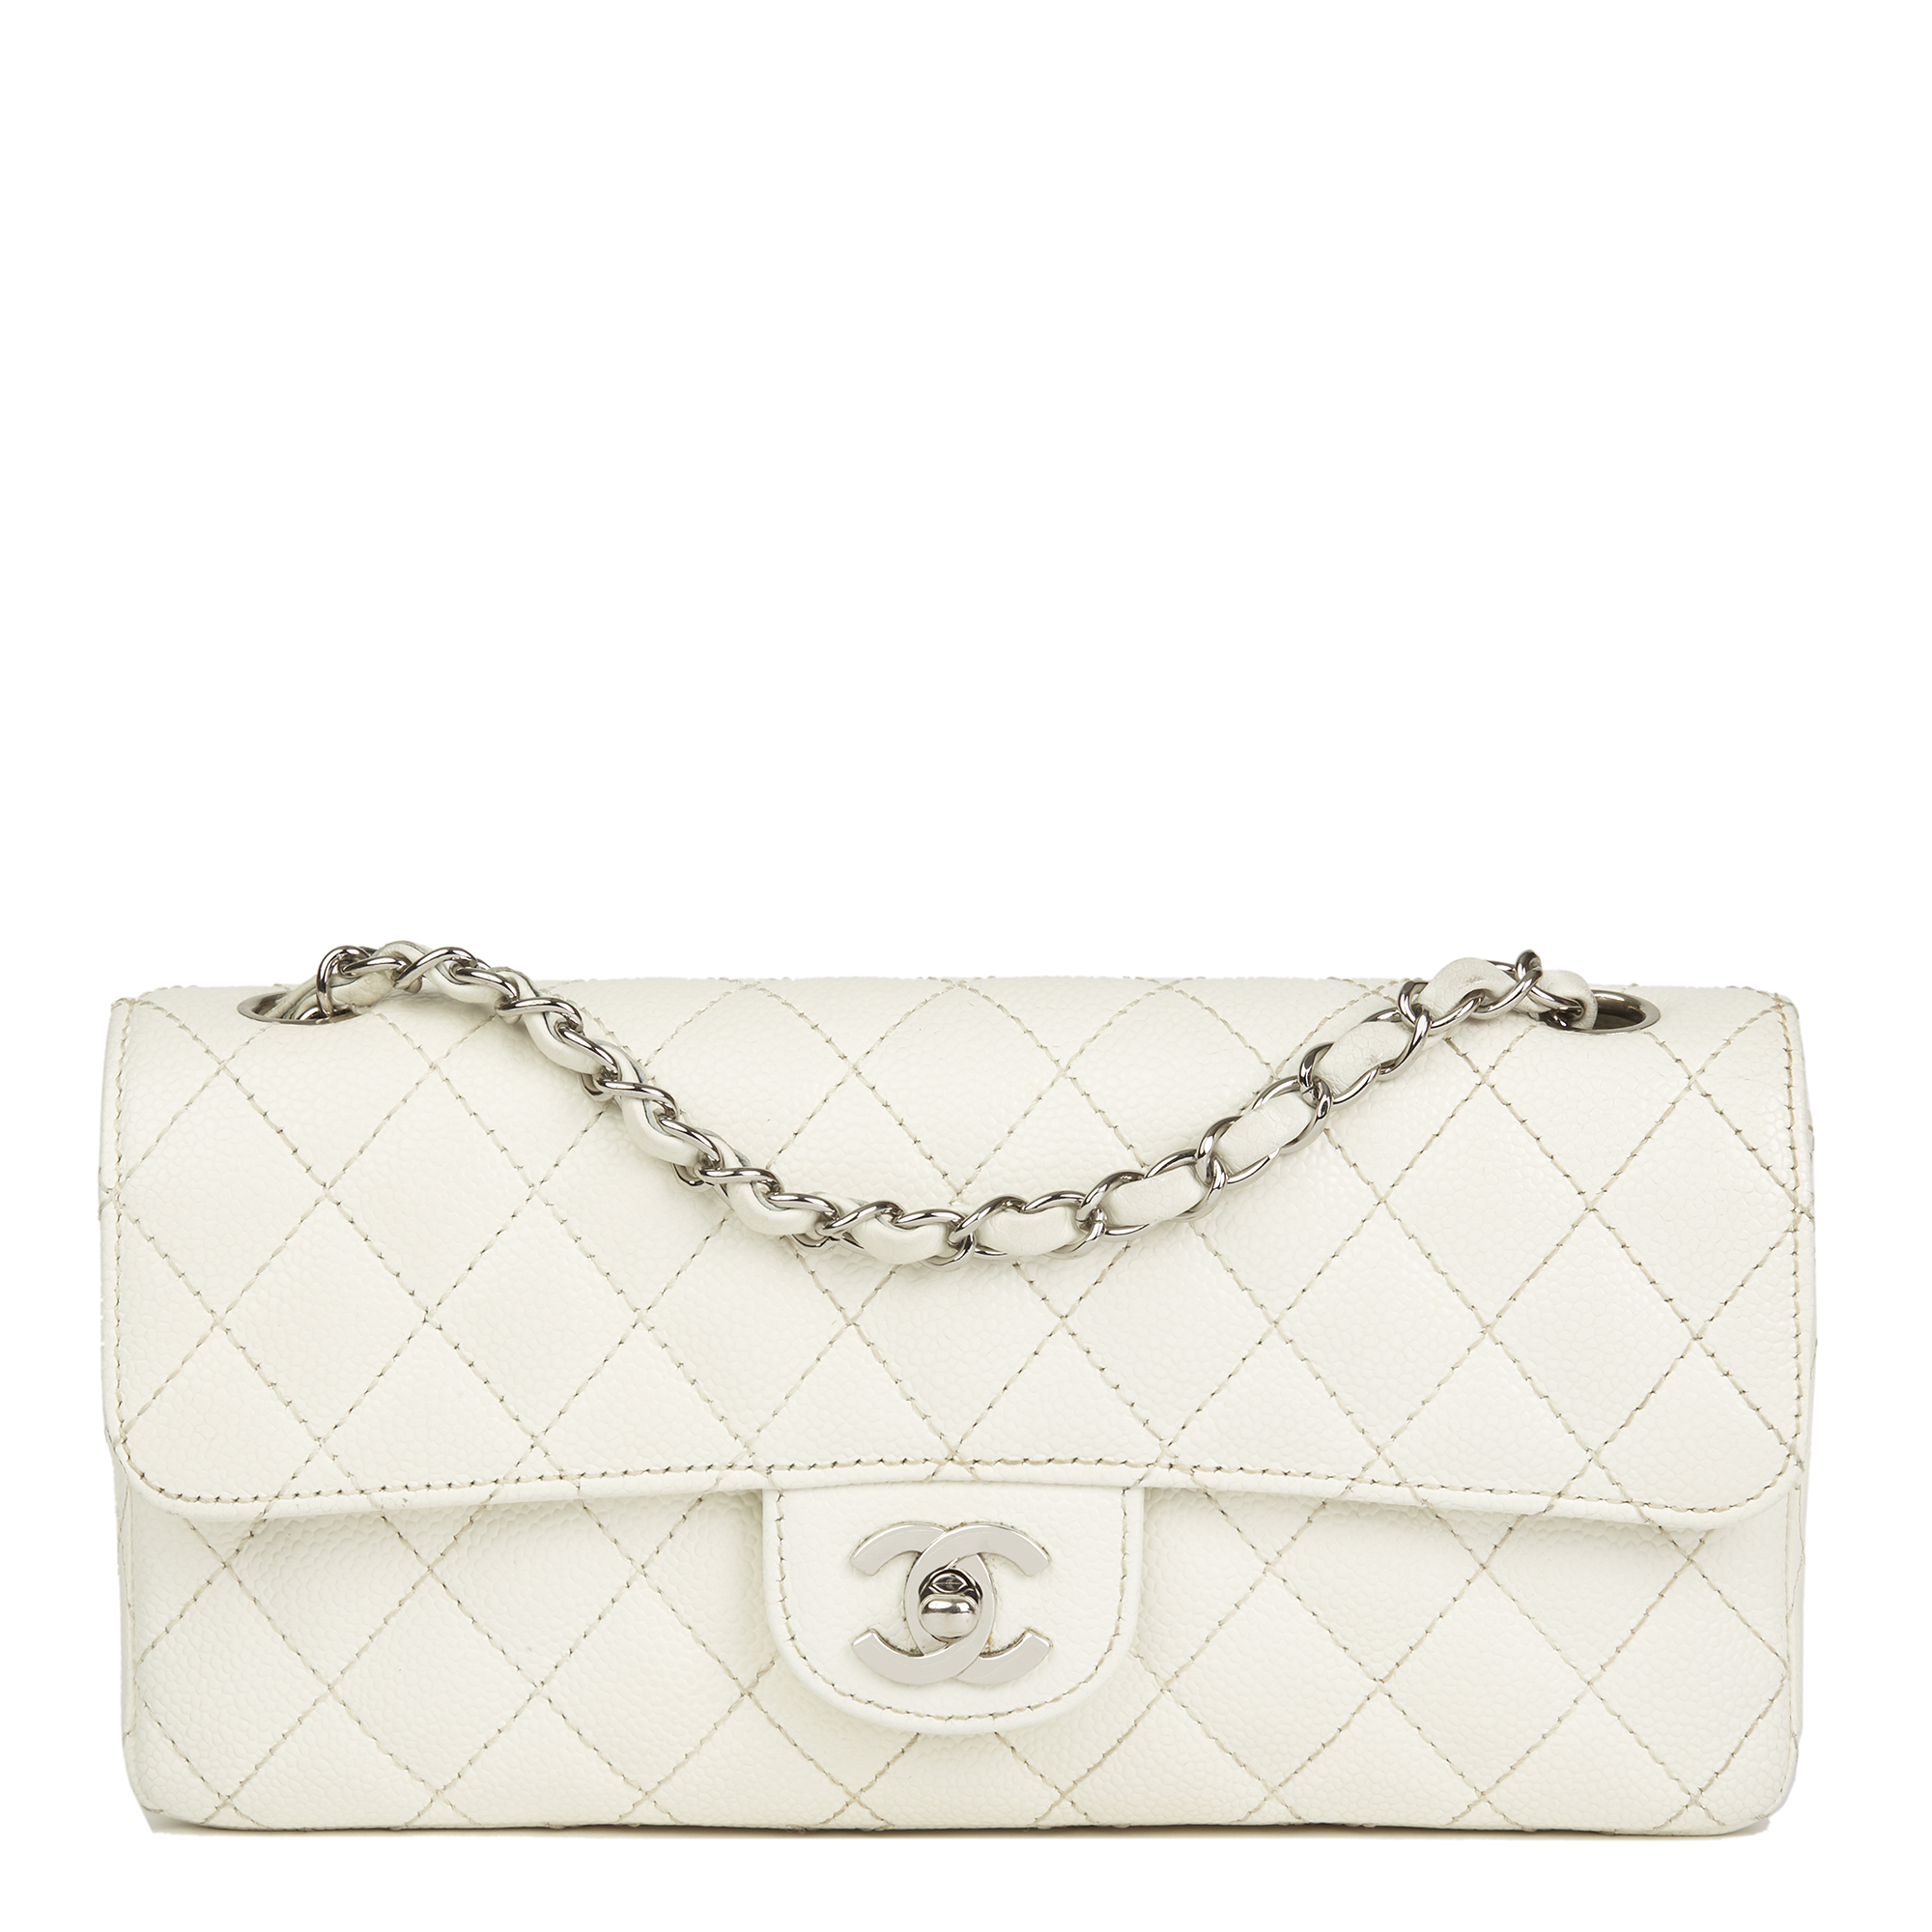 8973af76f4f6 Chanel White Quilted Caviar Leather East West Classic Single Flap Bag